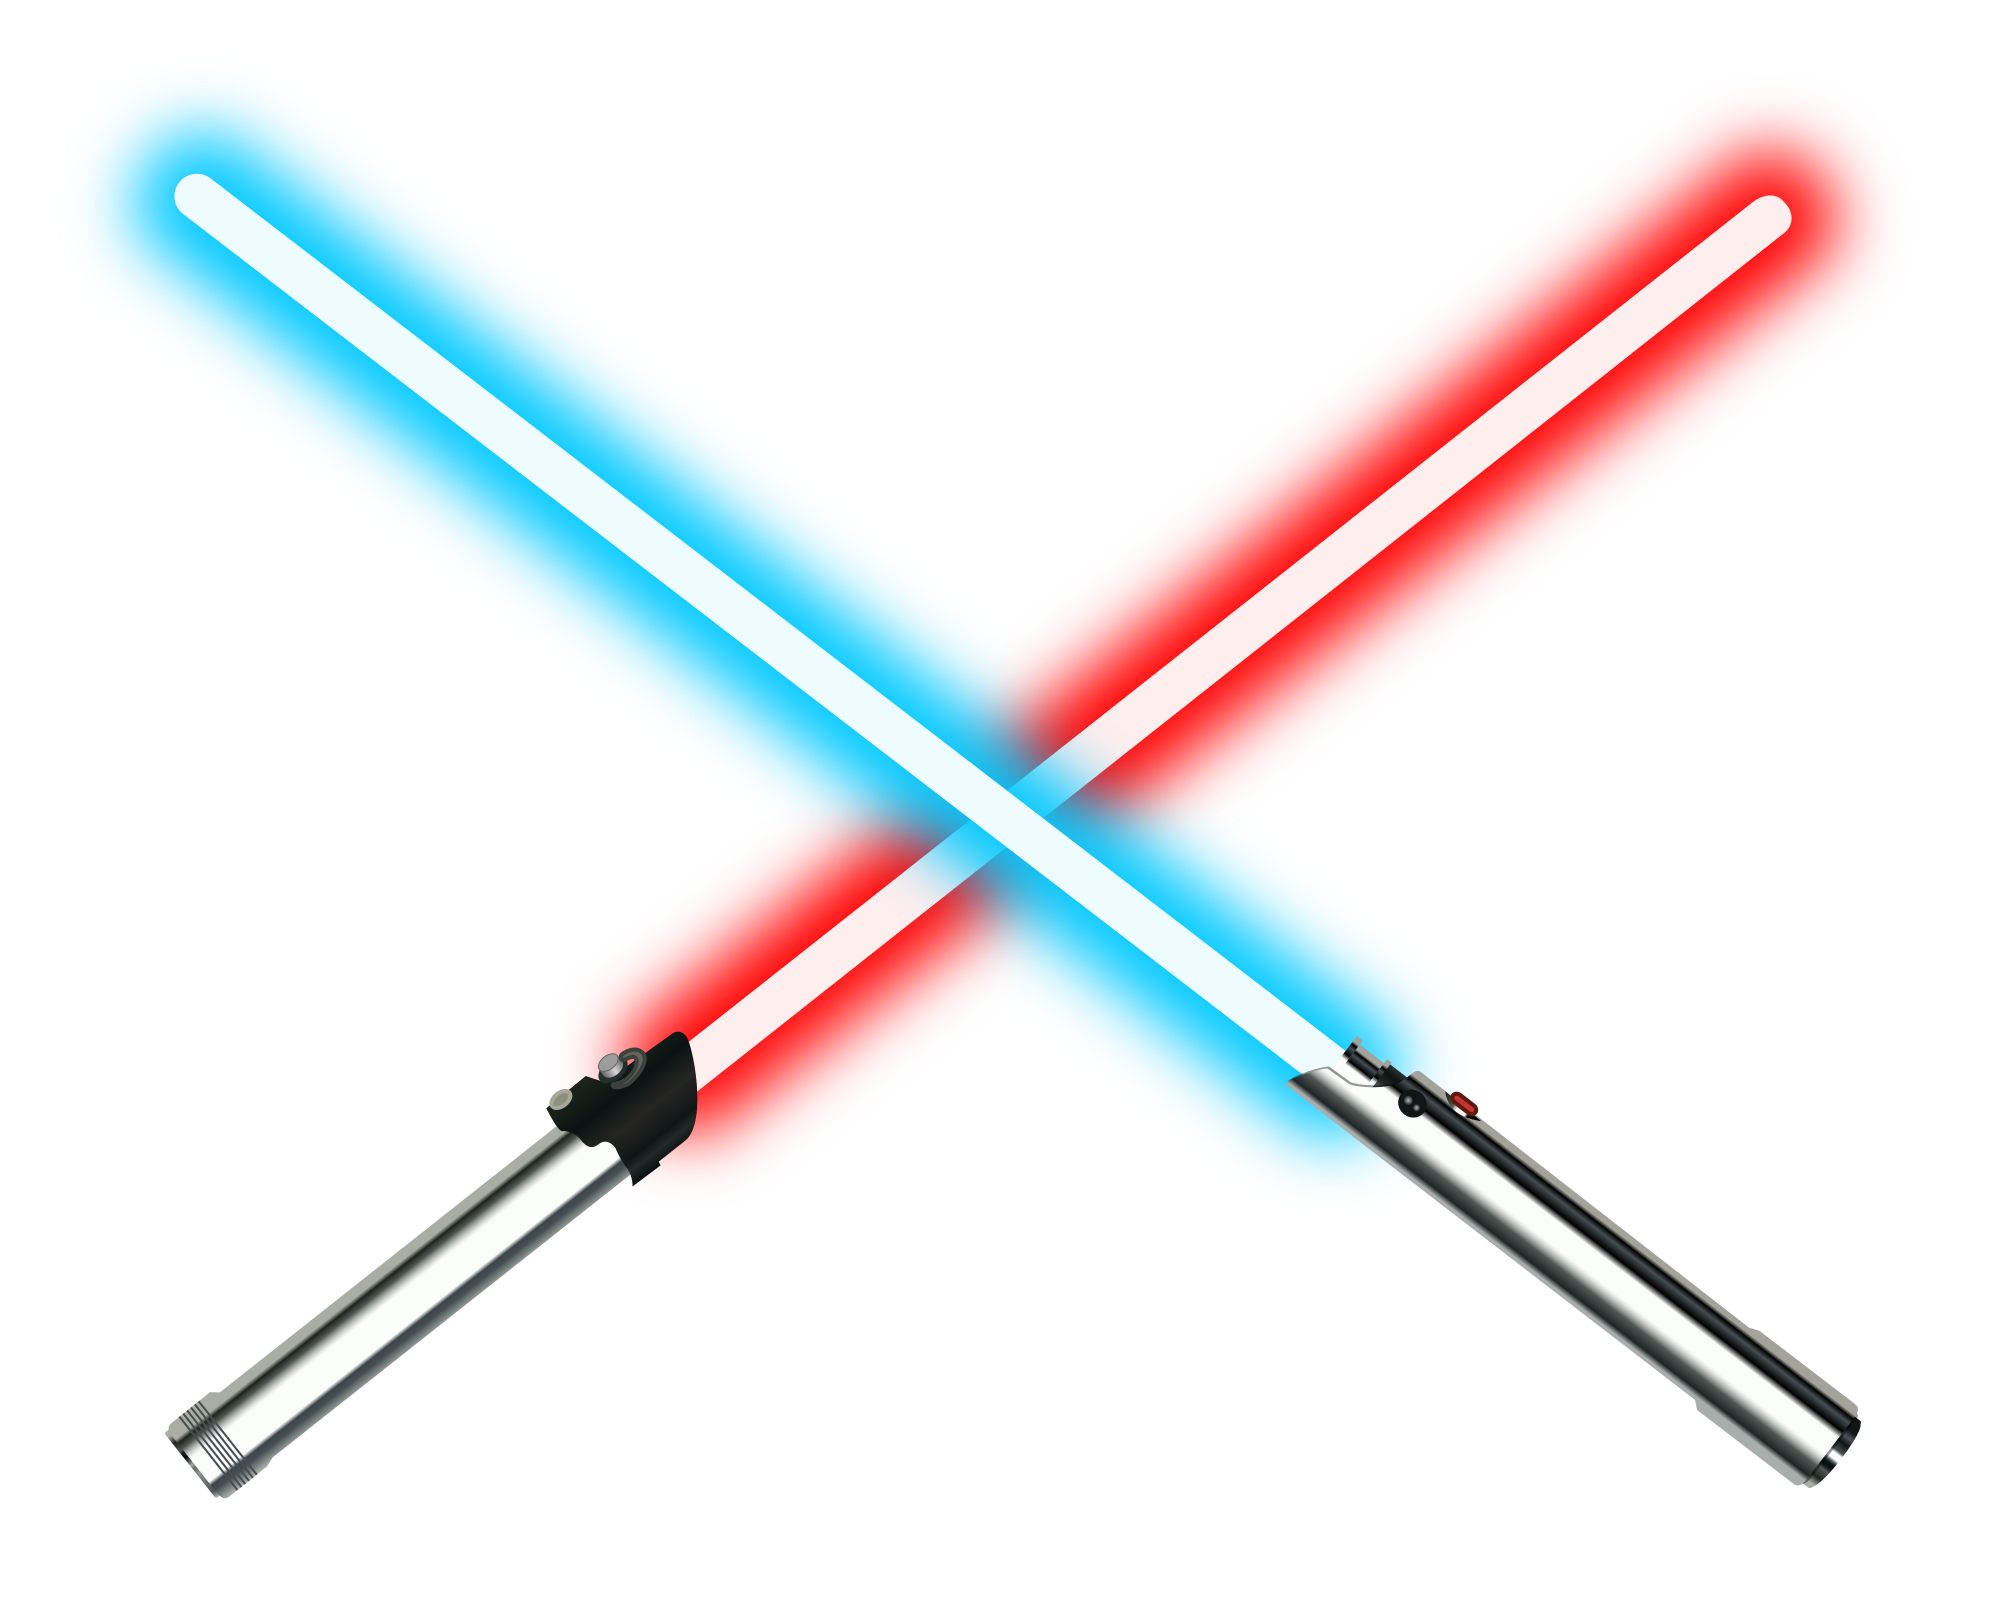 sith lightsaber png